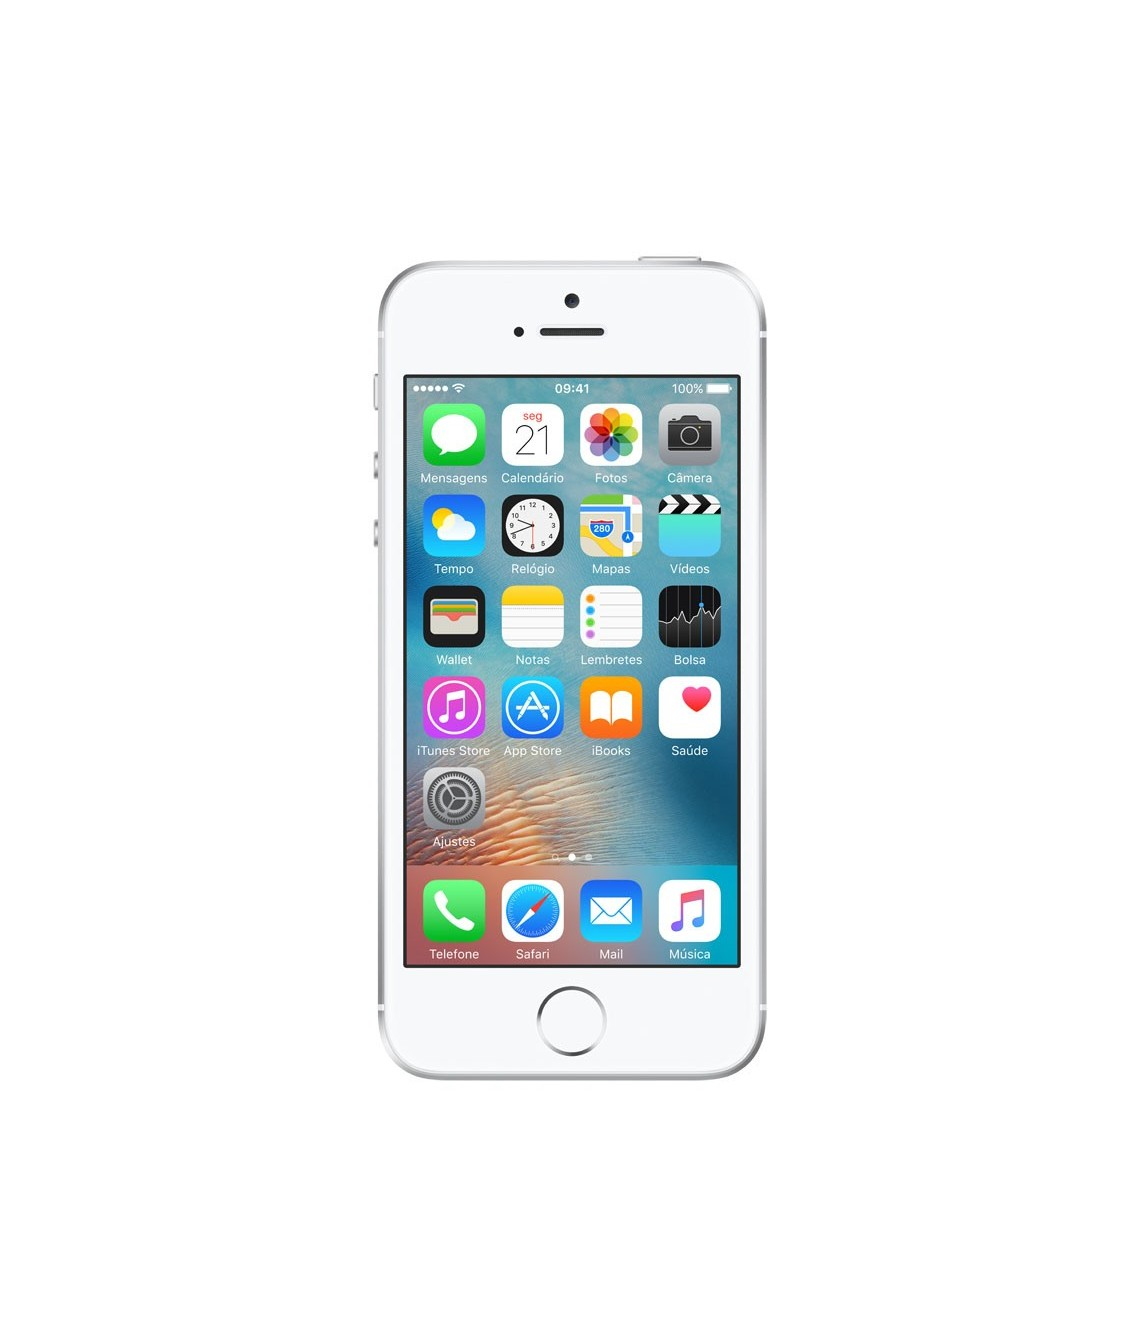 iPhone SE 16GB Prateado - 16GB - iOS 9 - 1.8 GHz Dual Core - Tela 4 ´ - Câmera 12MP - Desbloqueado - Recertificado